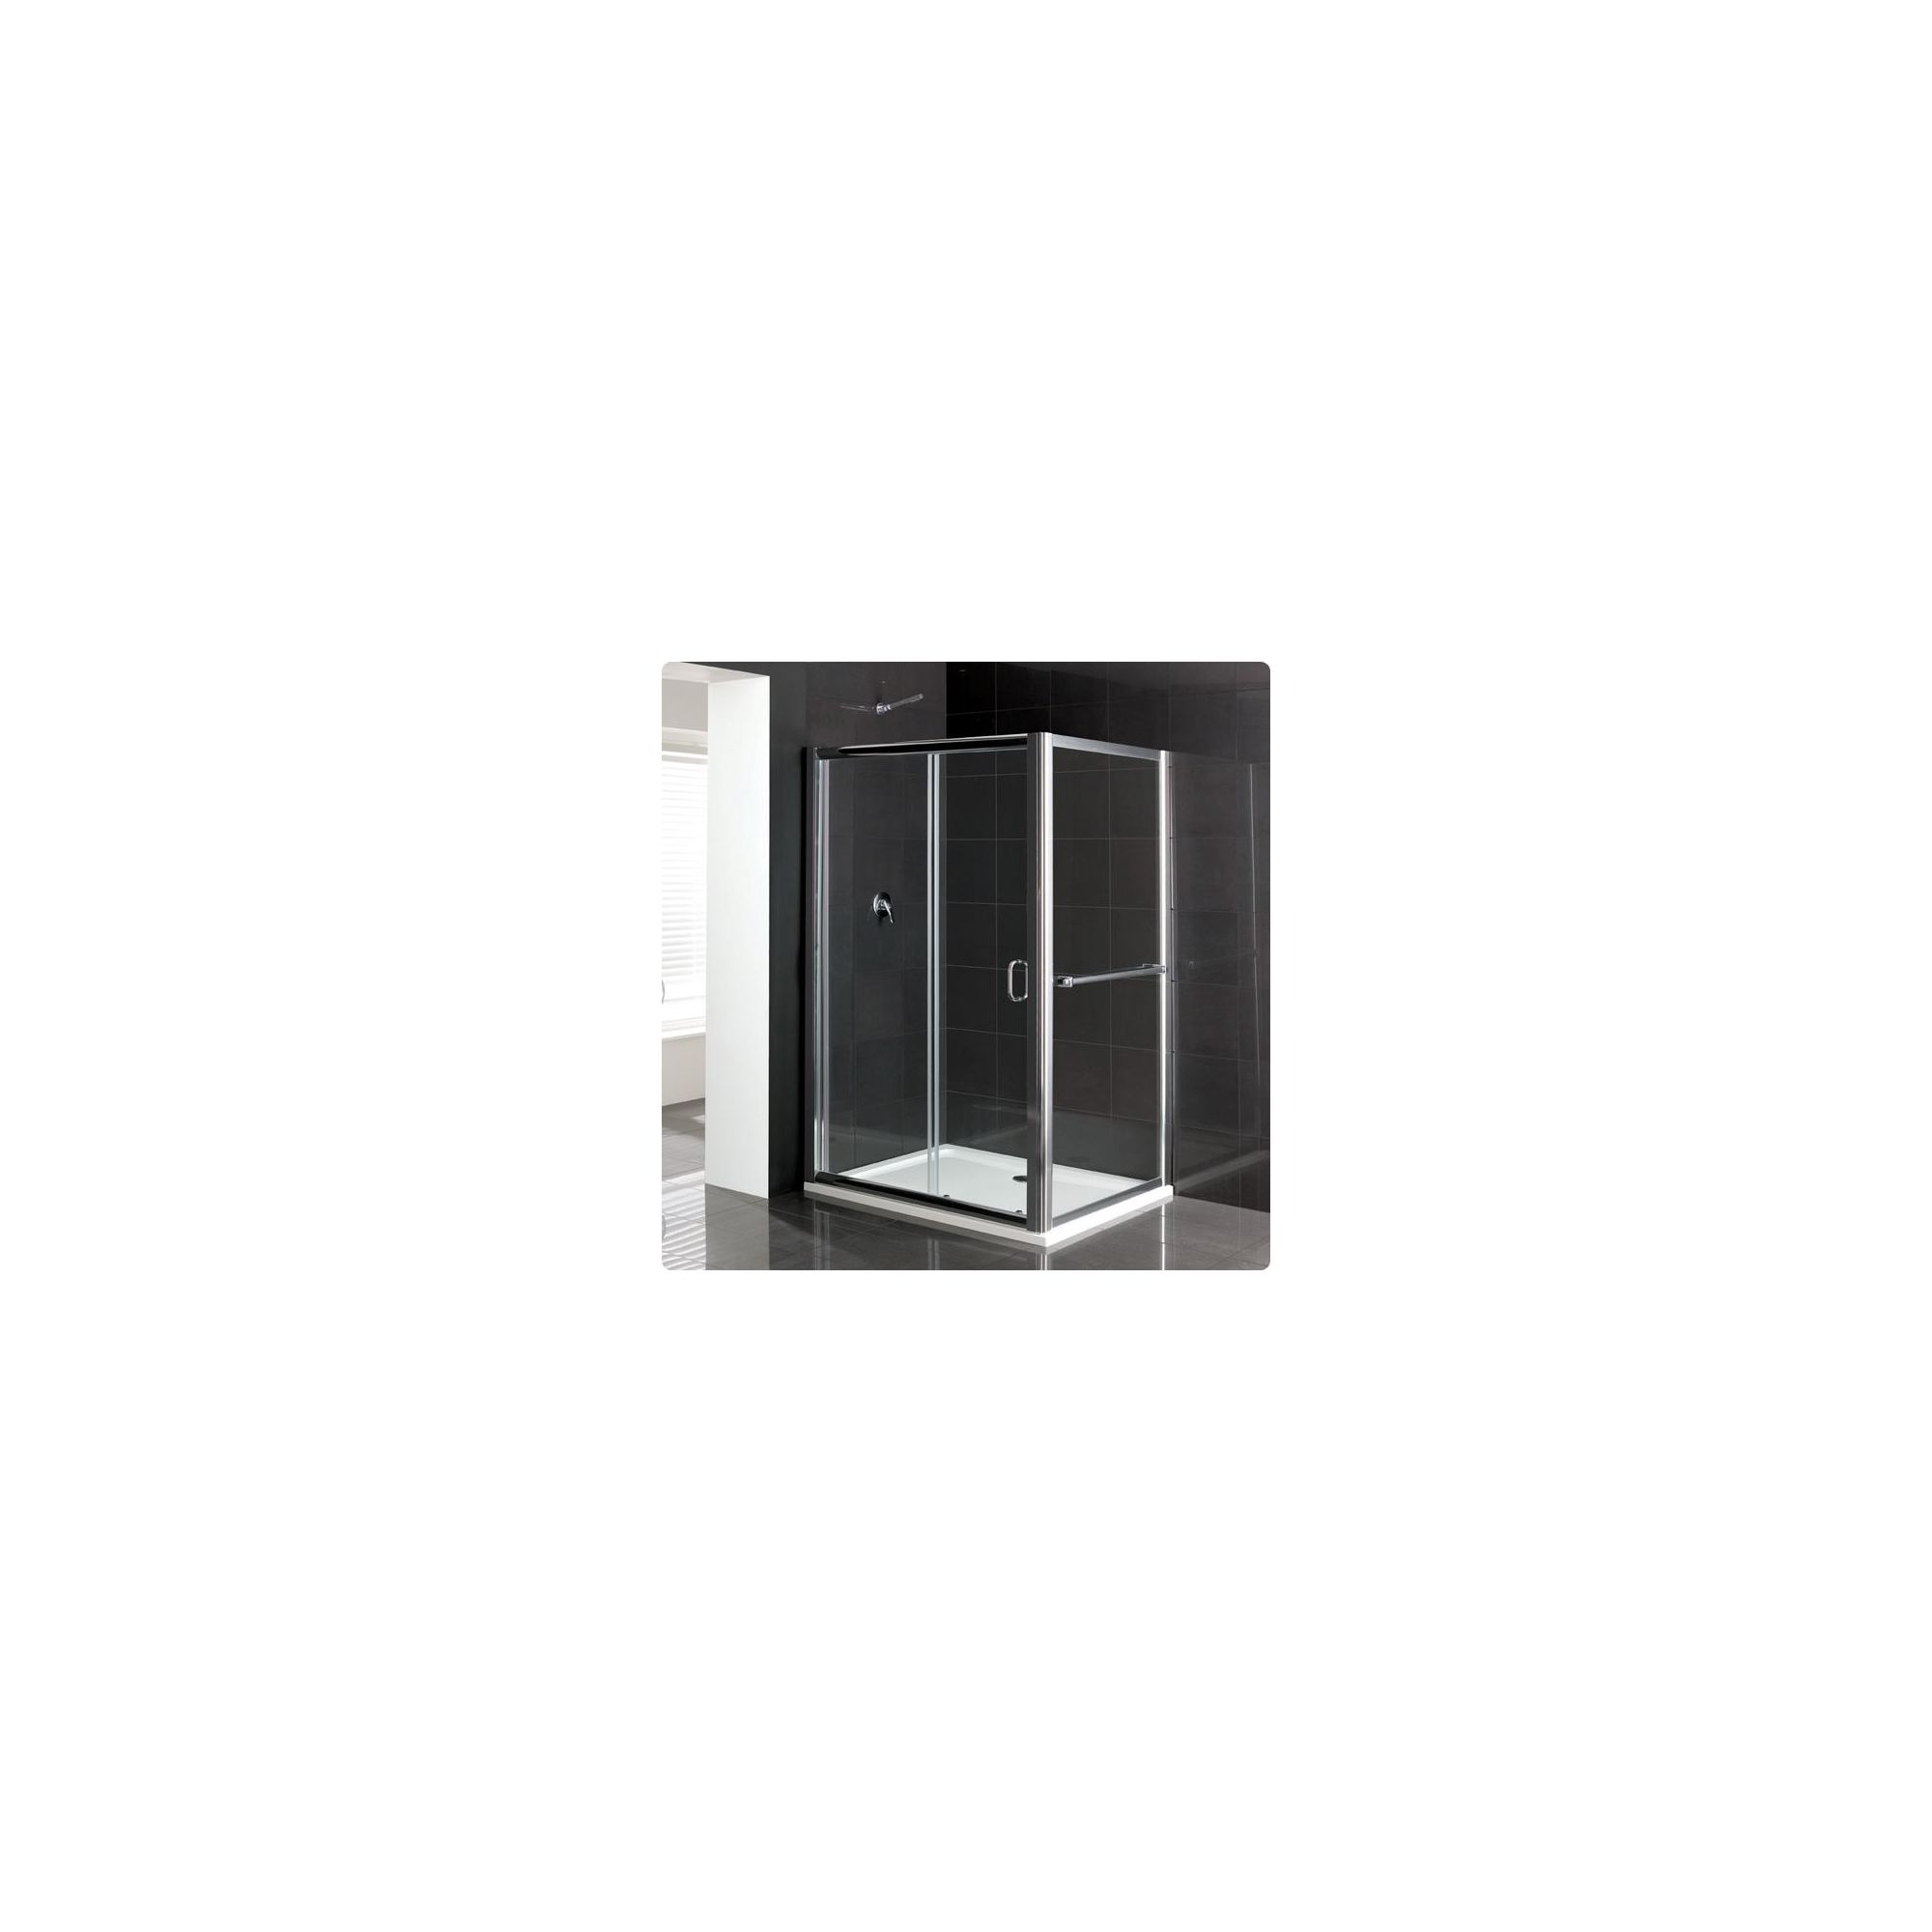 Duchy Elite Silver Sliding Door Shower Enclosure, 1100mm x 800mm, Standard Tray, 6mm Glass at Tesco Direct